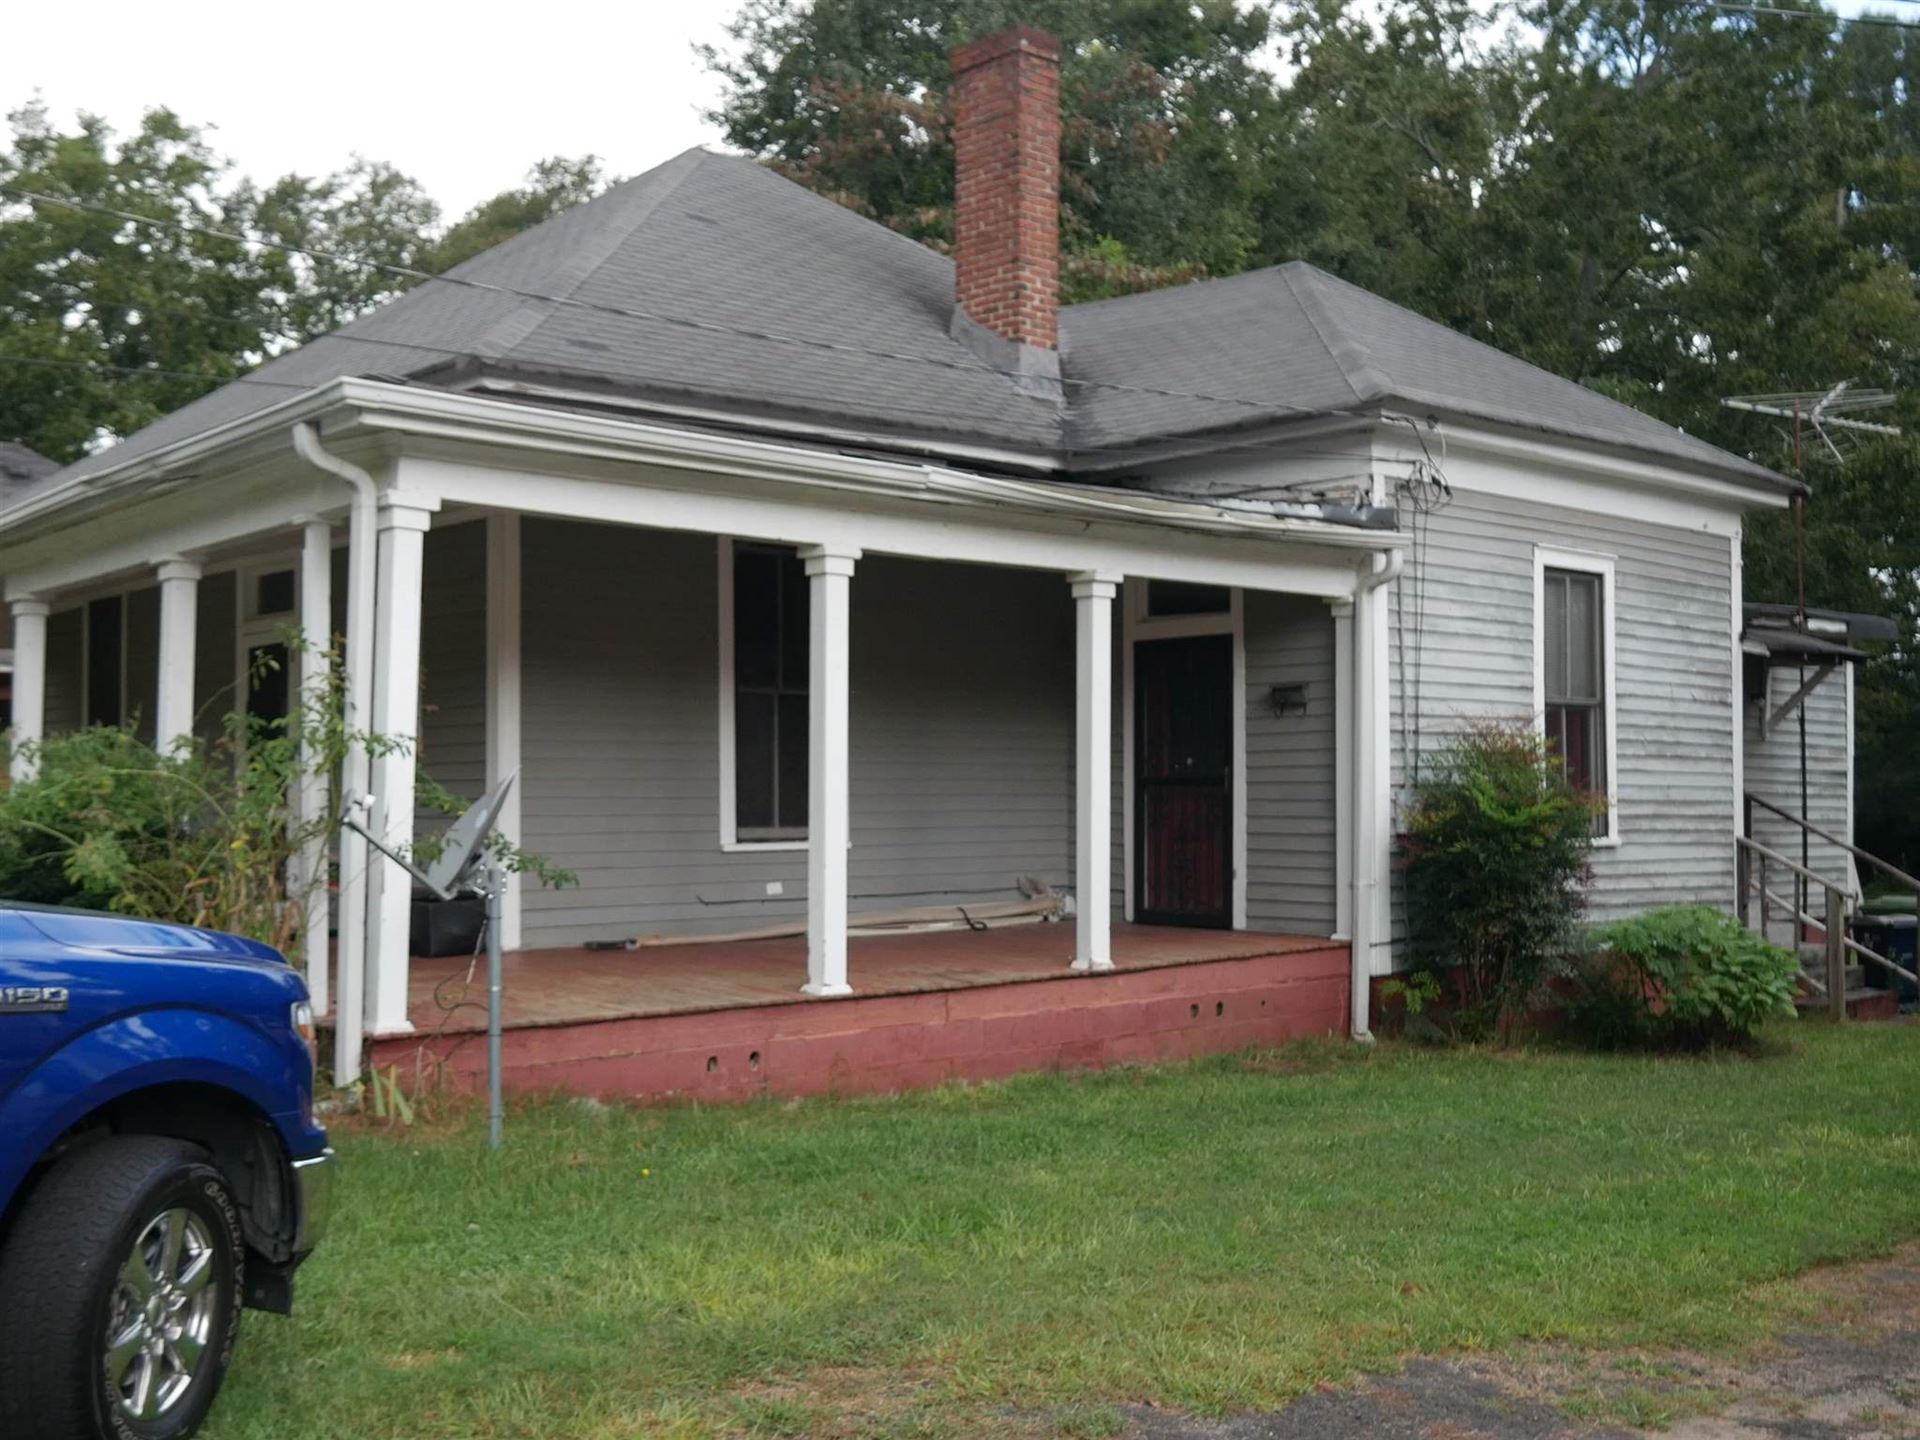 741 E Chappell St, Griffin, GA 30223 - MLS#: 8867240